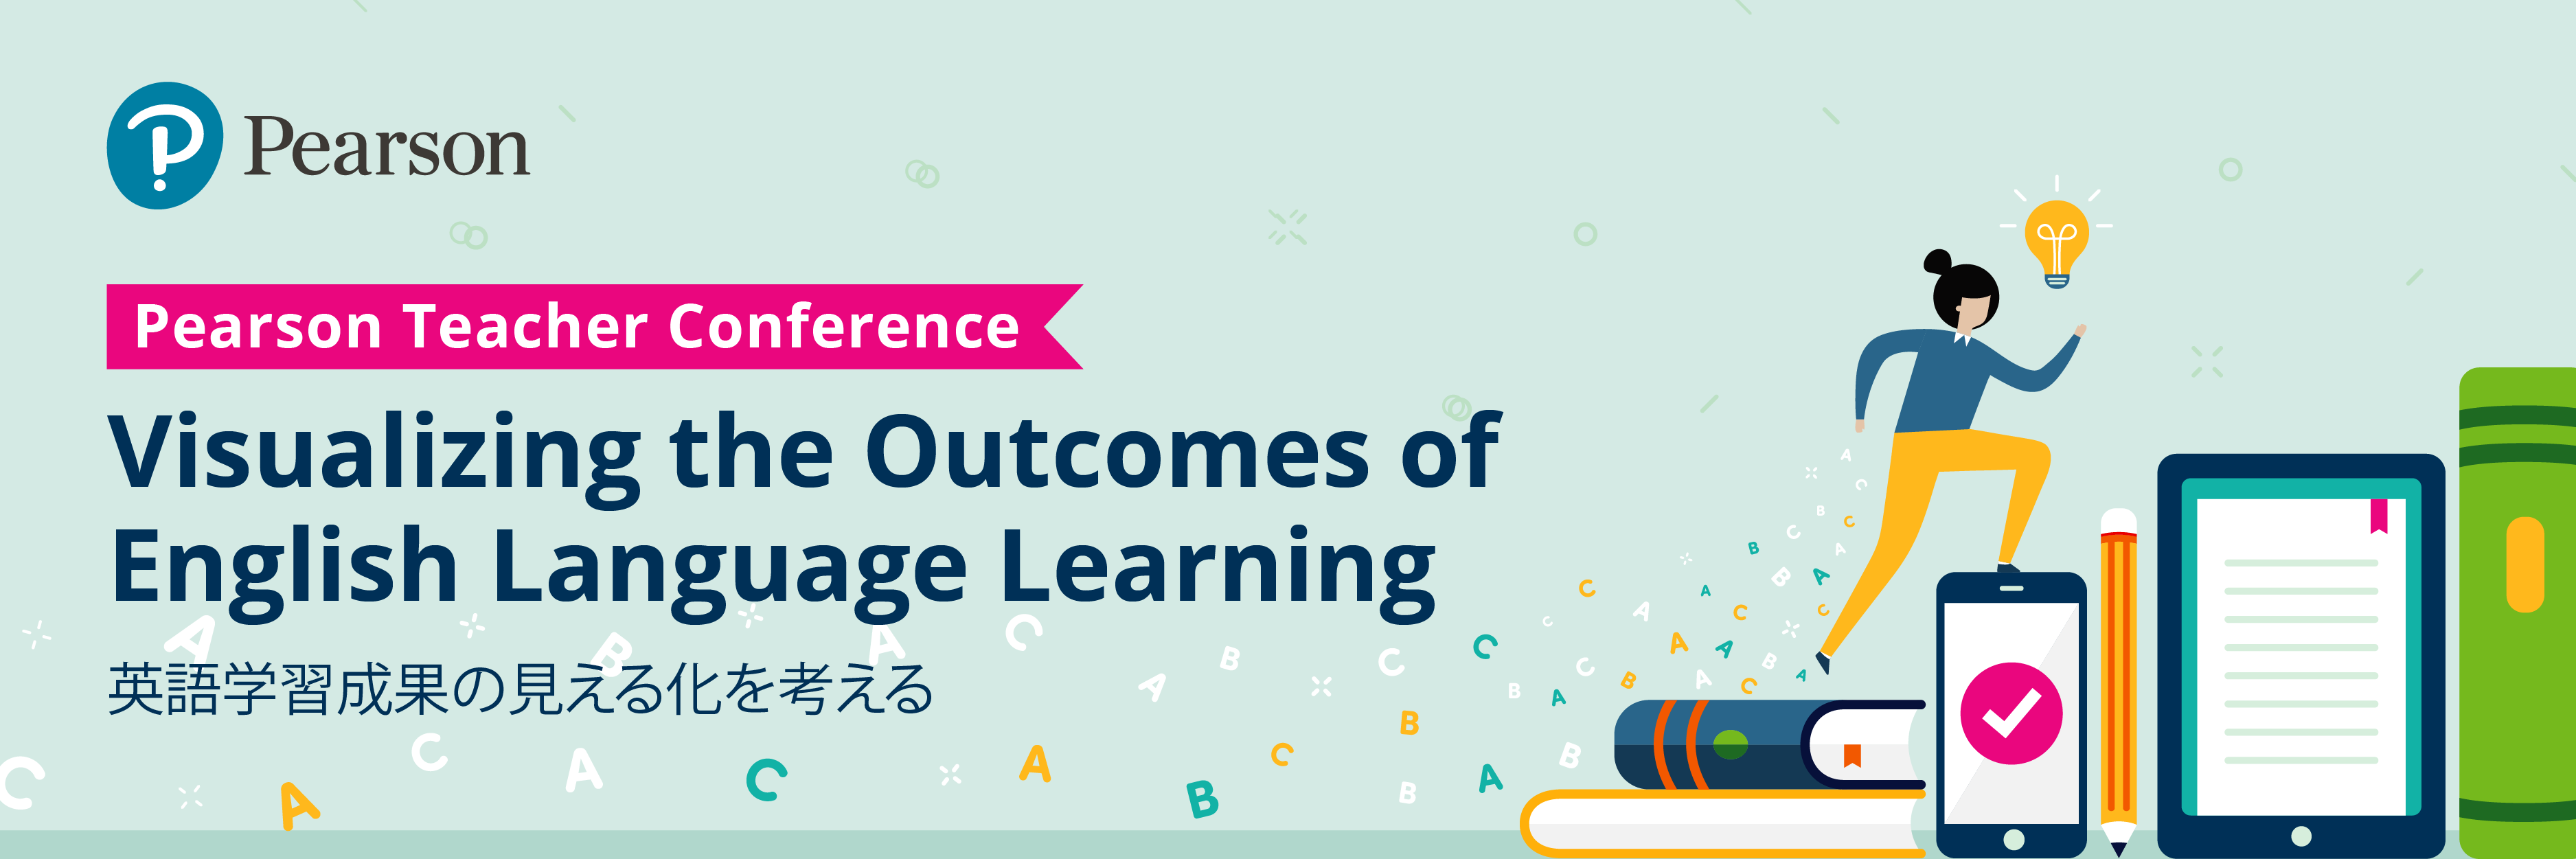 Visualizing the Outcomes of English Language Learning